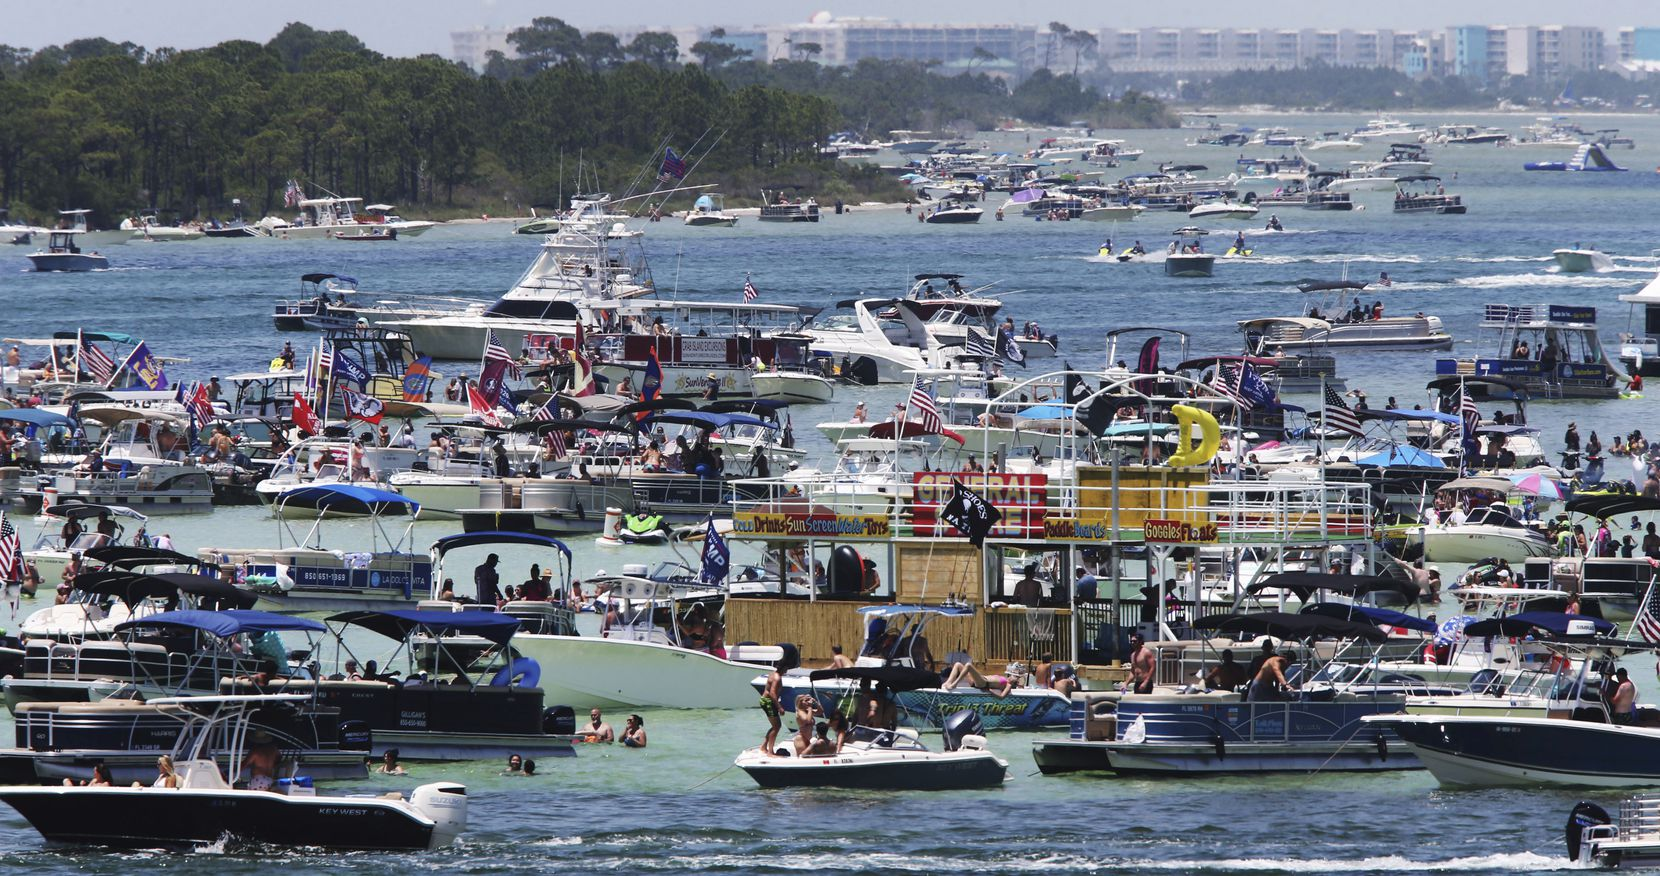 """Boaters crowded an area known as """"Crab Island"""" in the shallow waters near Destin Fla., over Memorial Day weekend."""